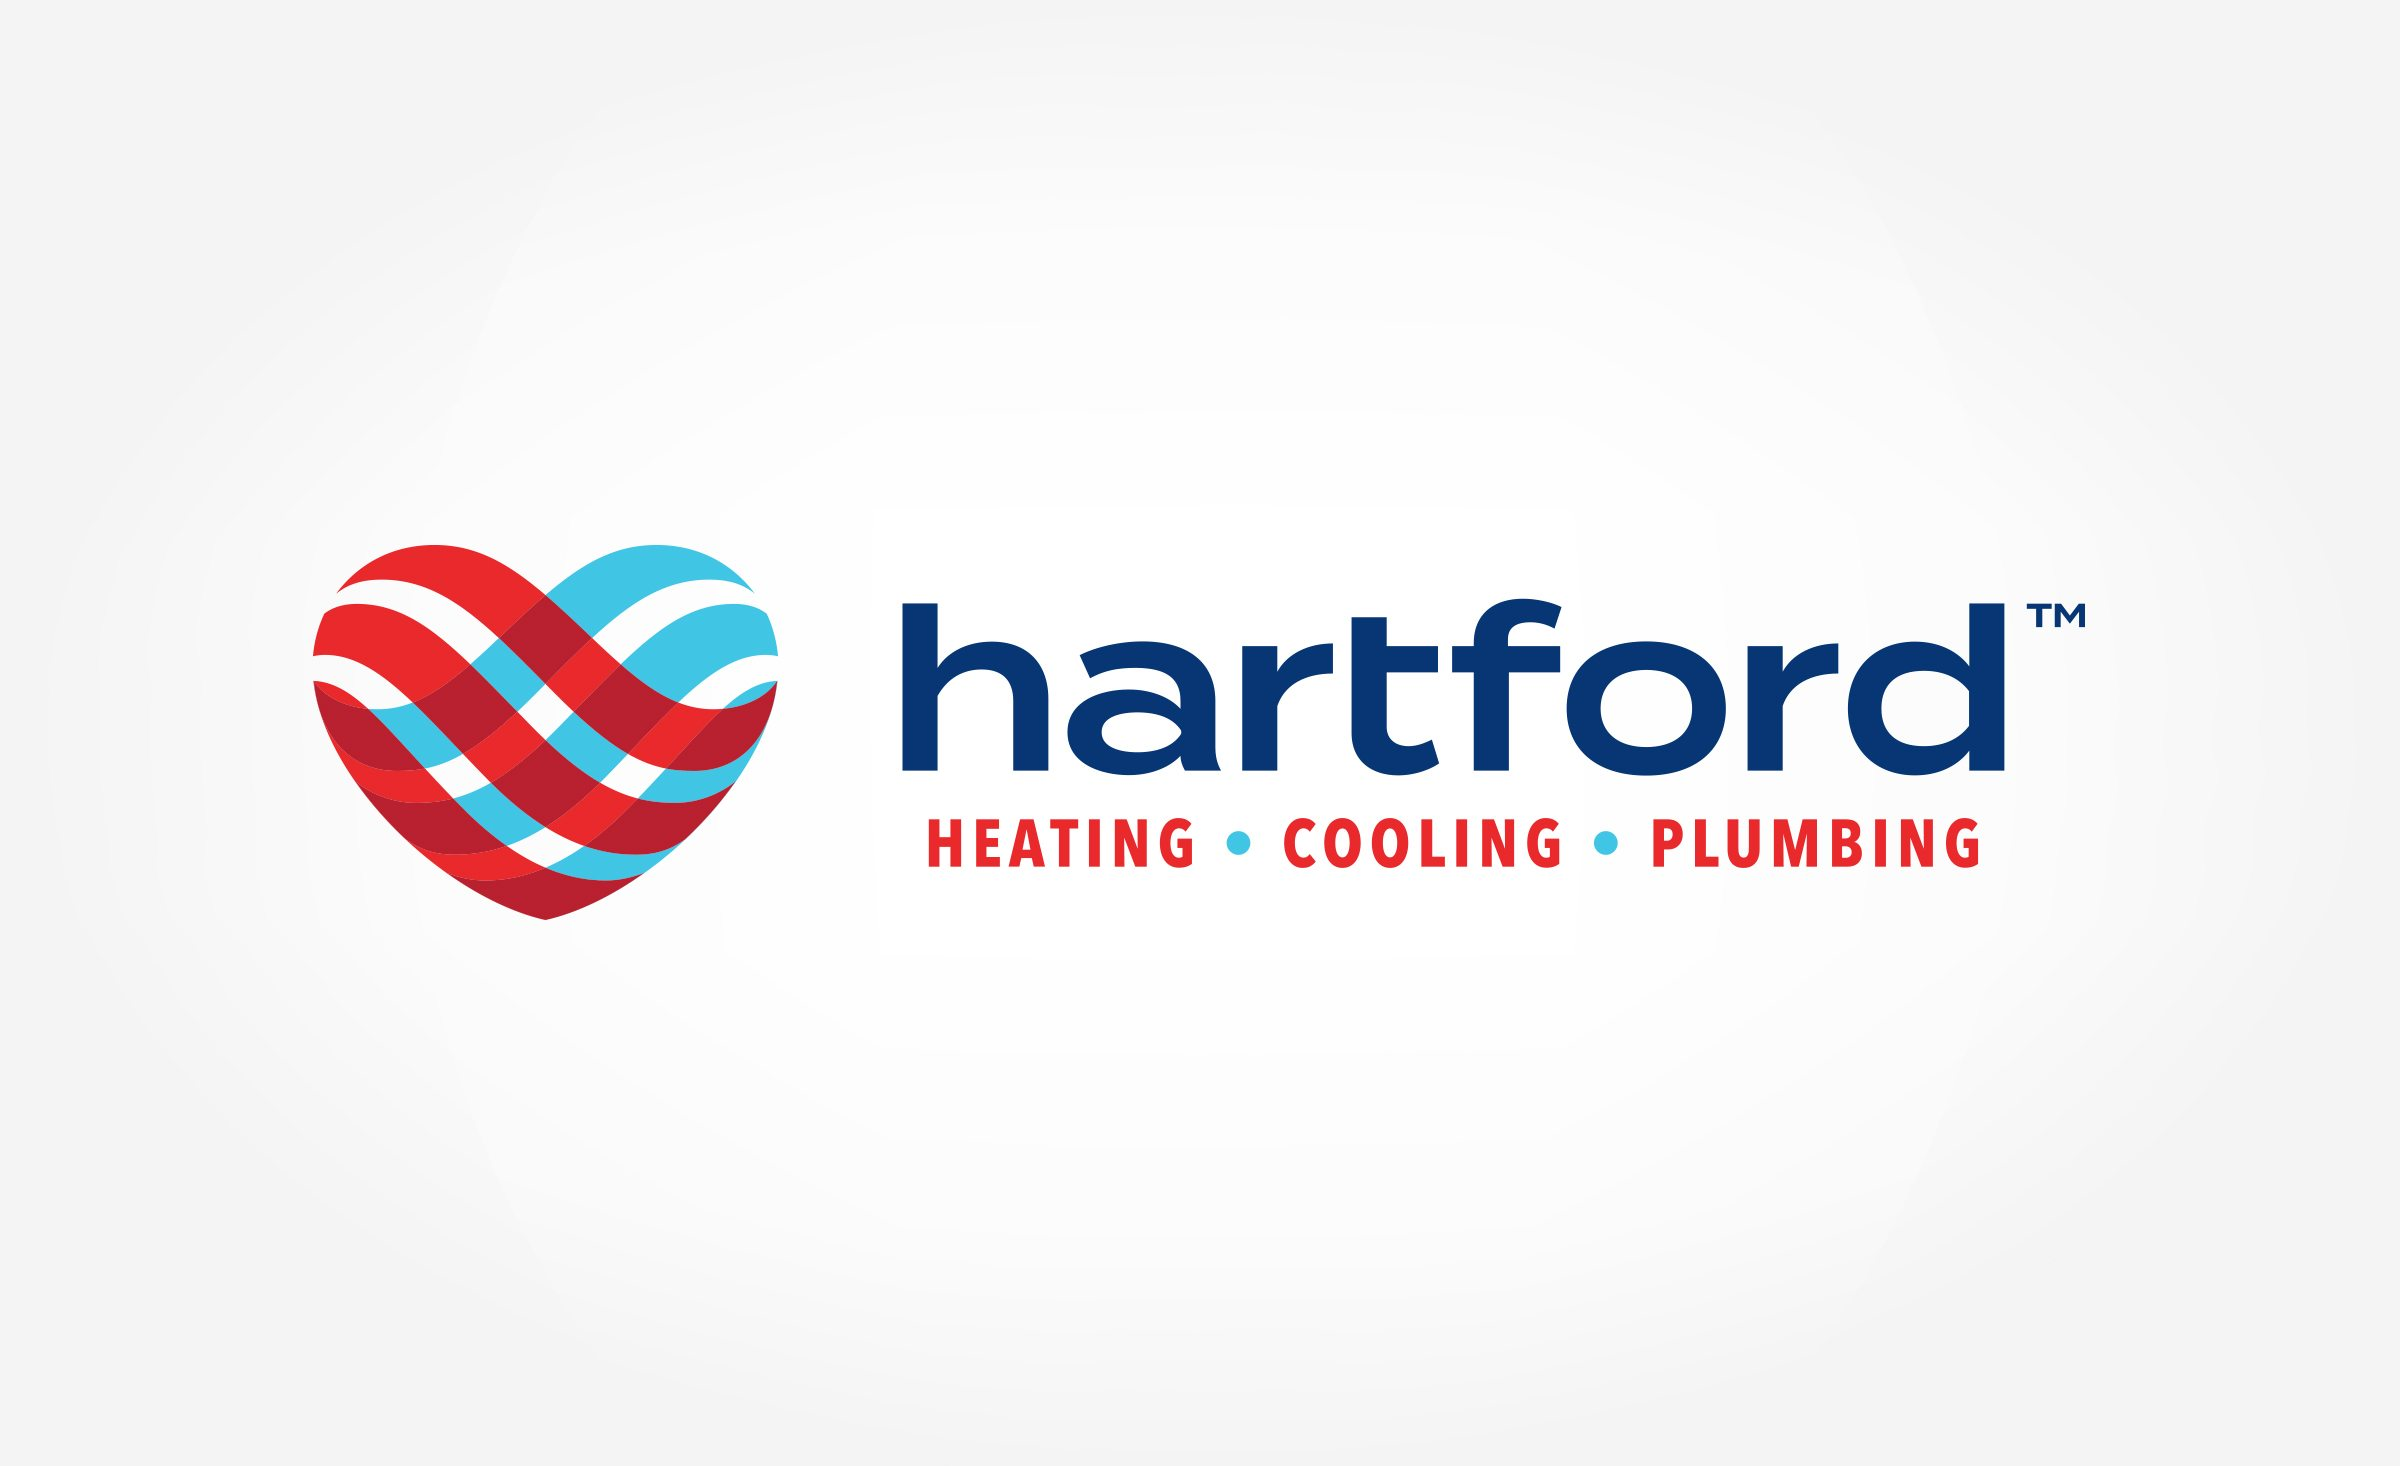 Hartford Services